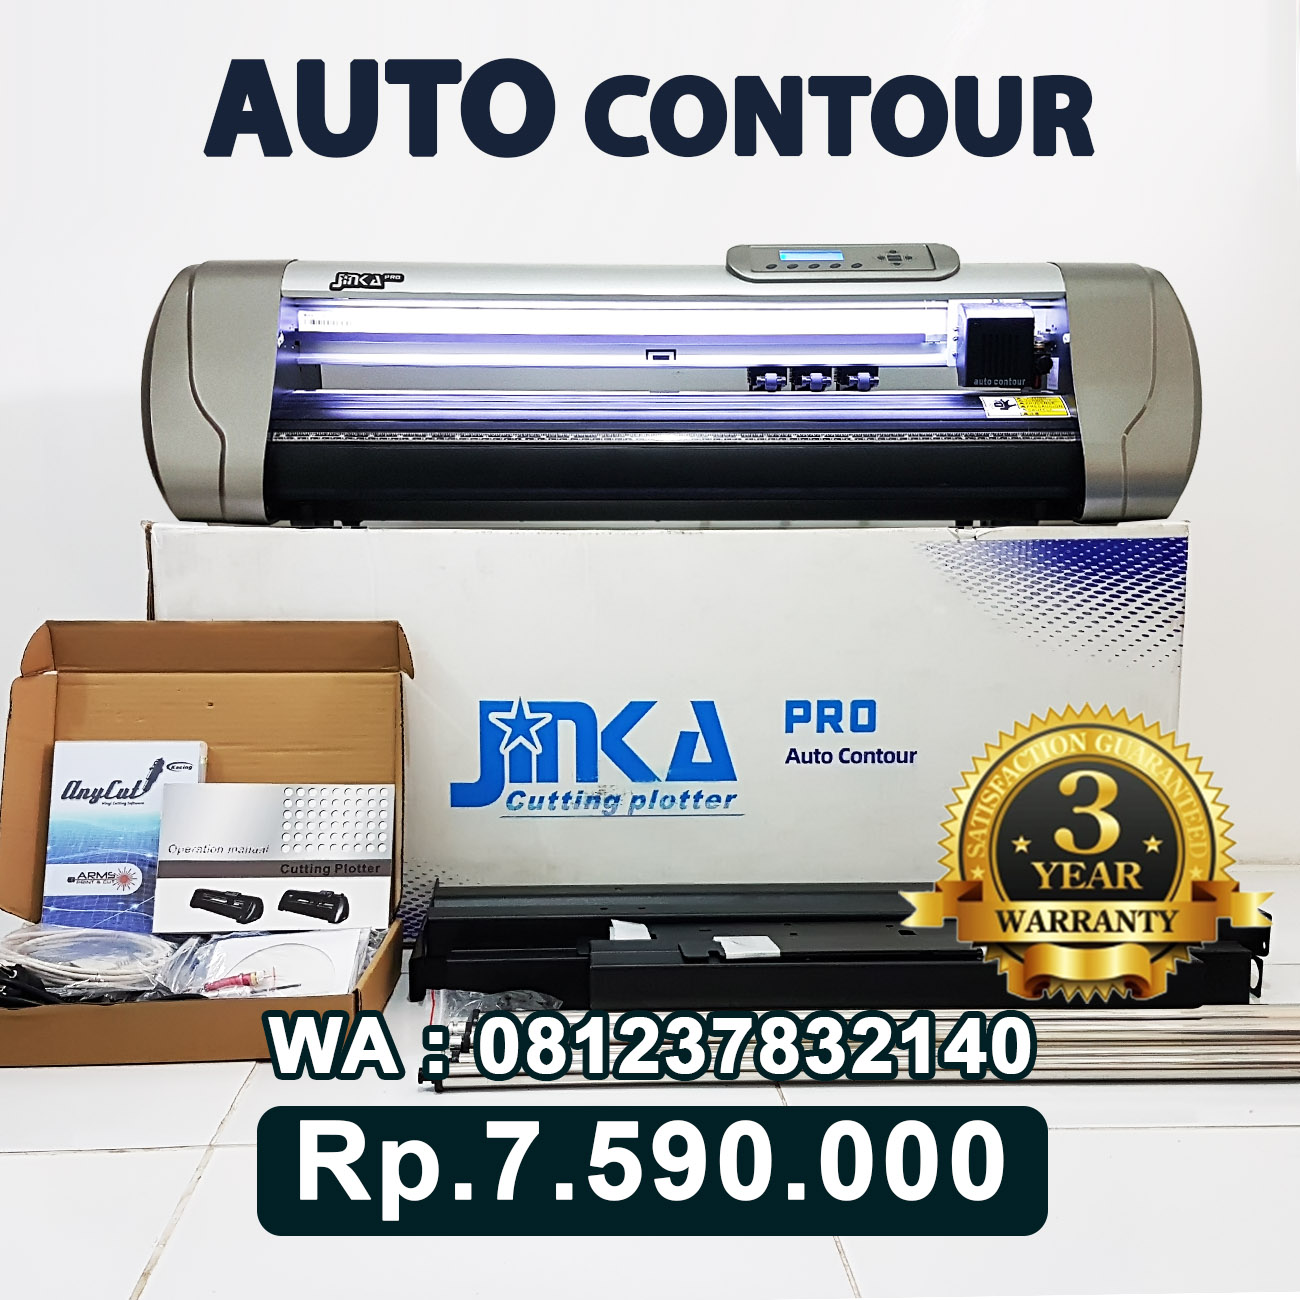 JUAL MESIN CUTTING STICKER JINKA PRO 722 LED AUTO CONTOUR CUT Negara